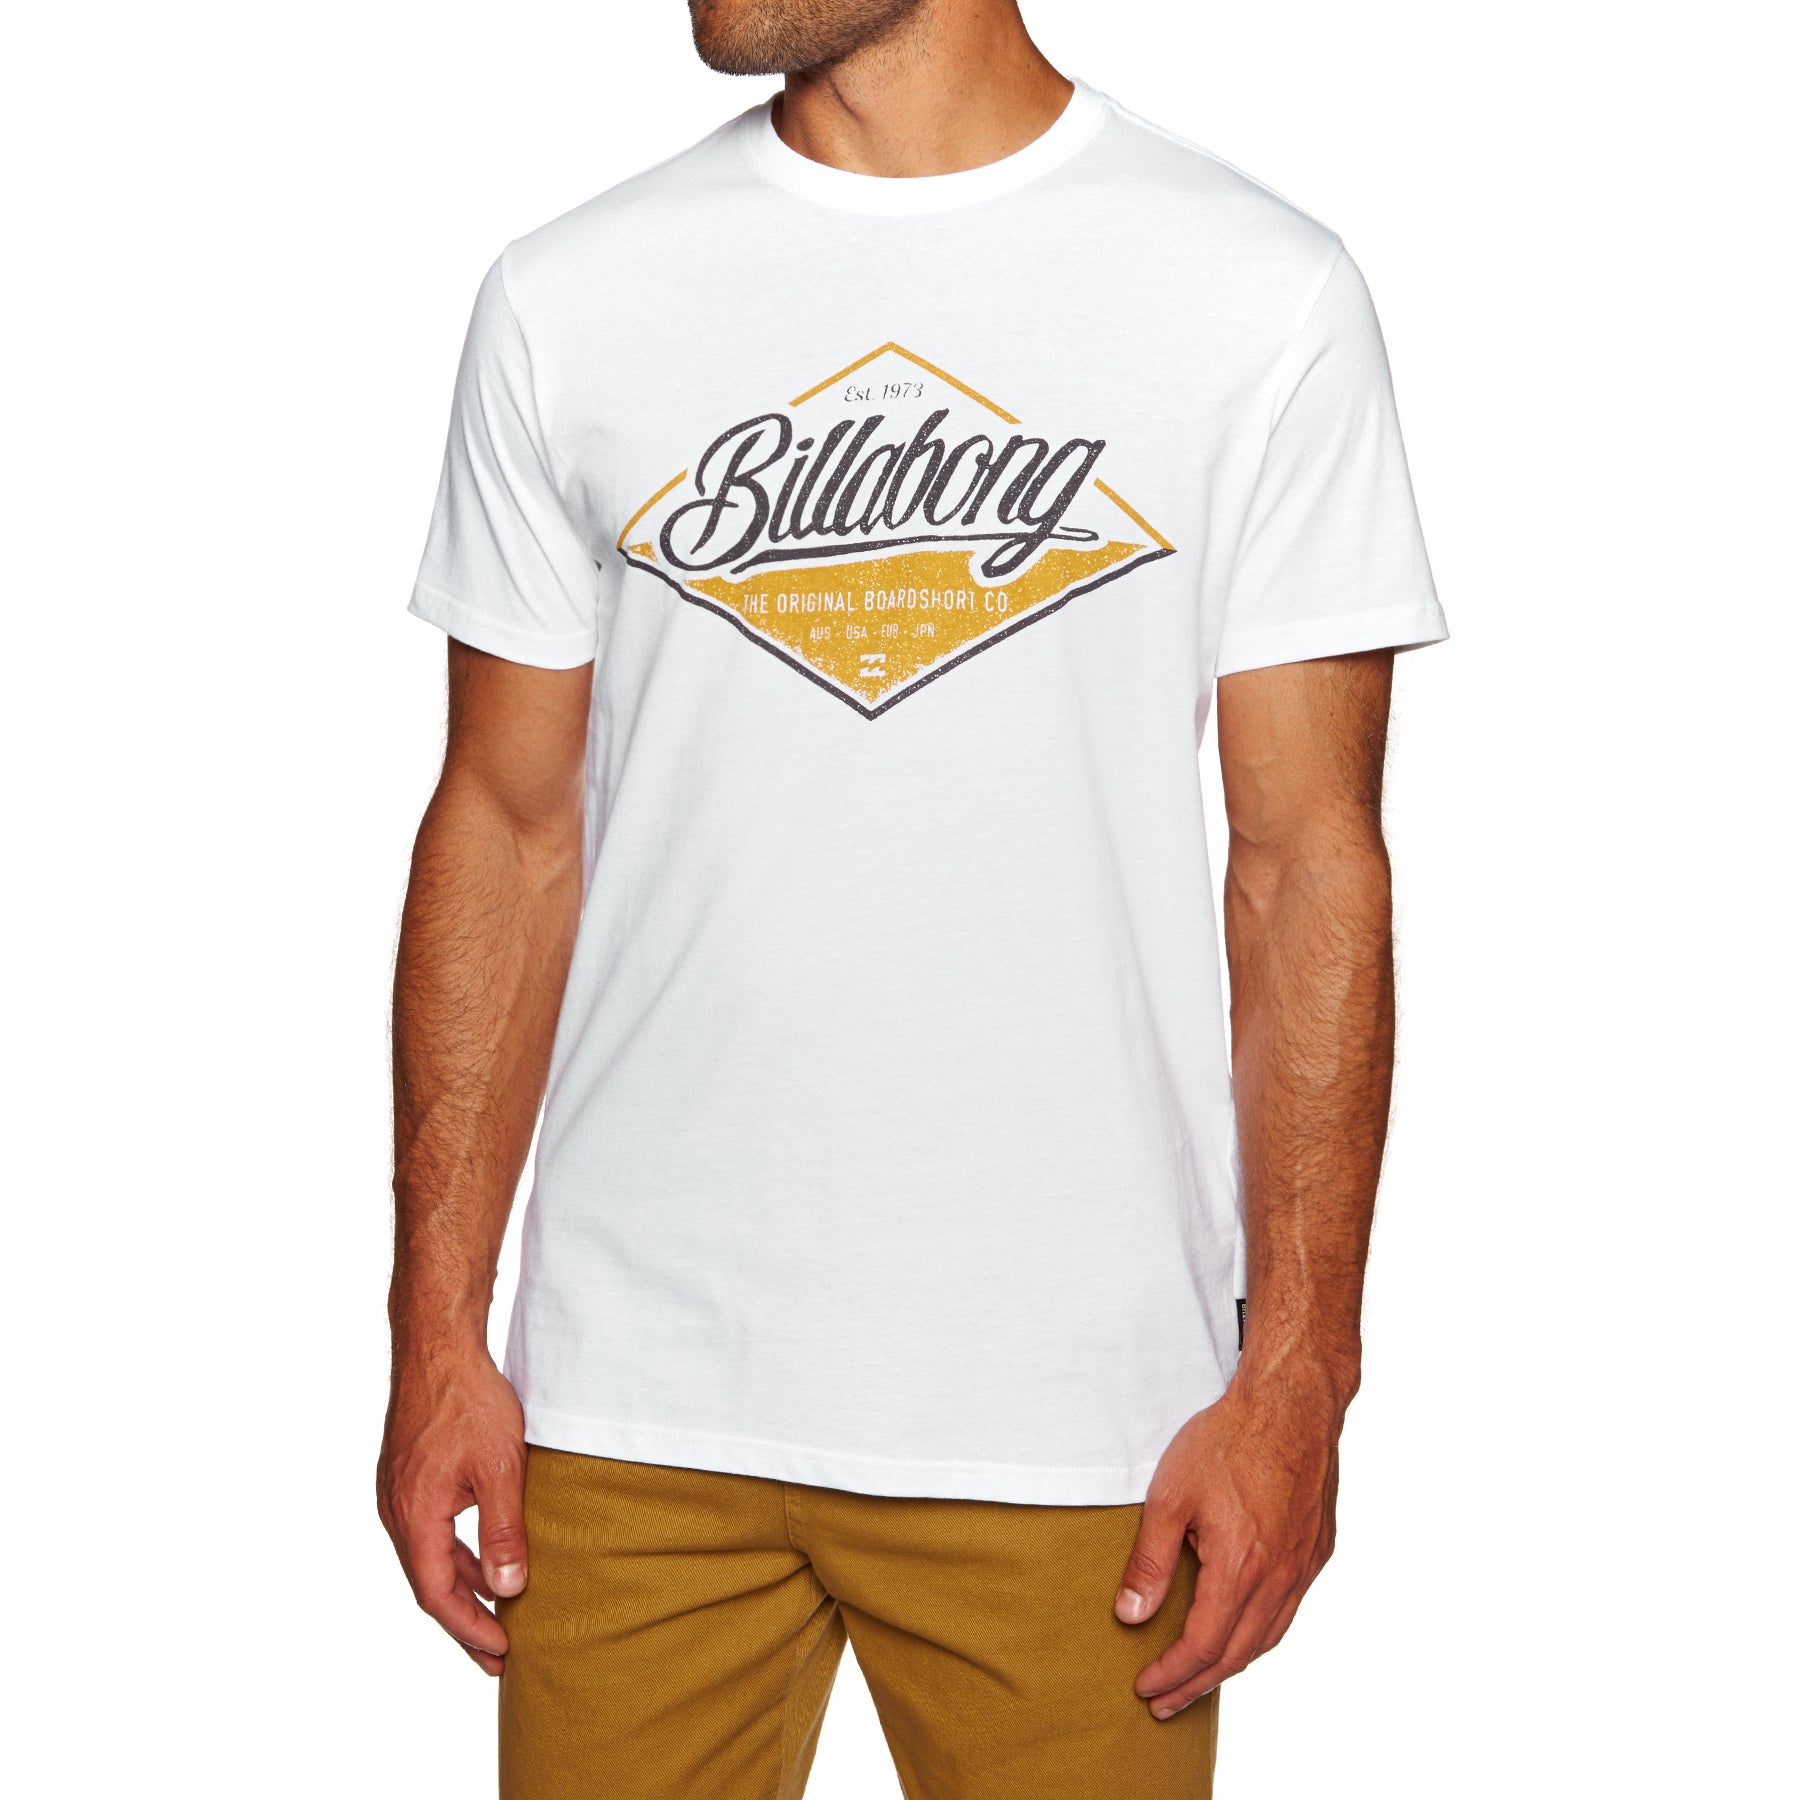 Billabong T Street Short Sleeve T-Shirt